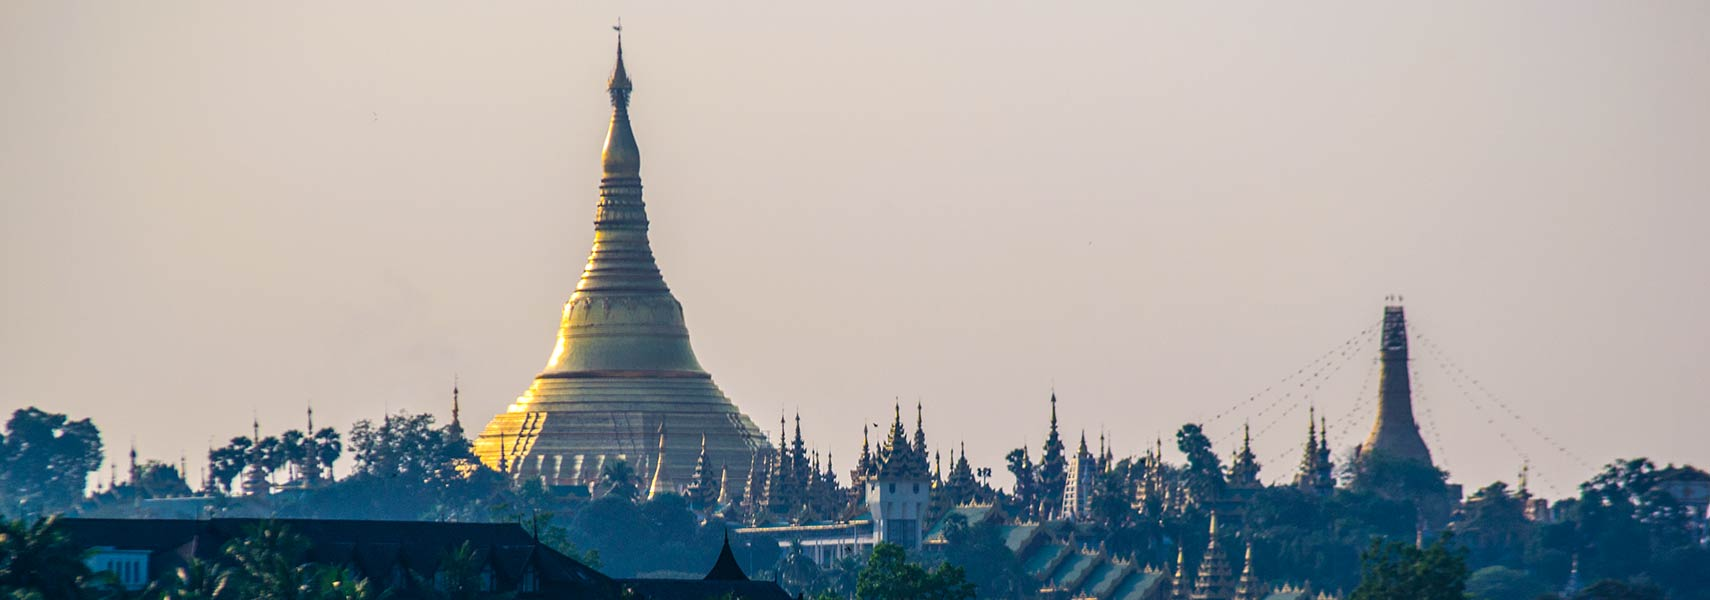 Shwedagon Pagoda at sunset Yangon Myanmar Countries